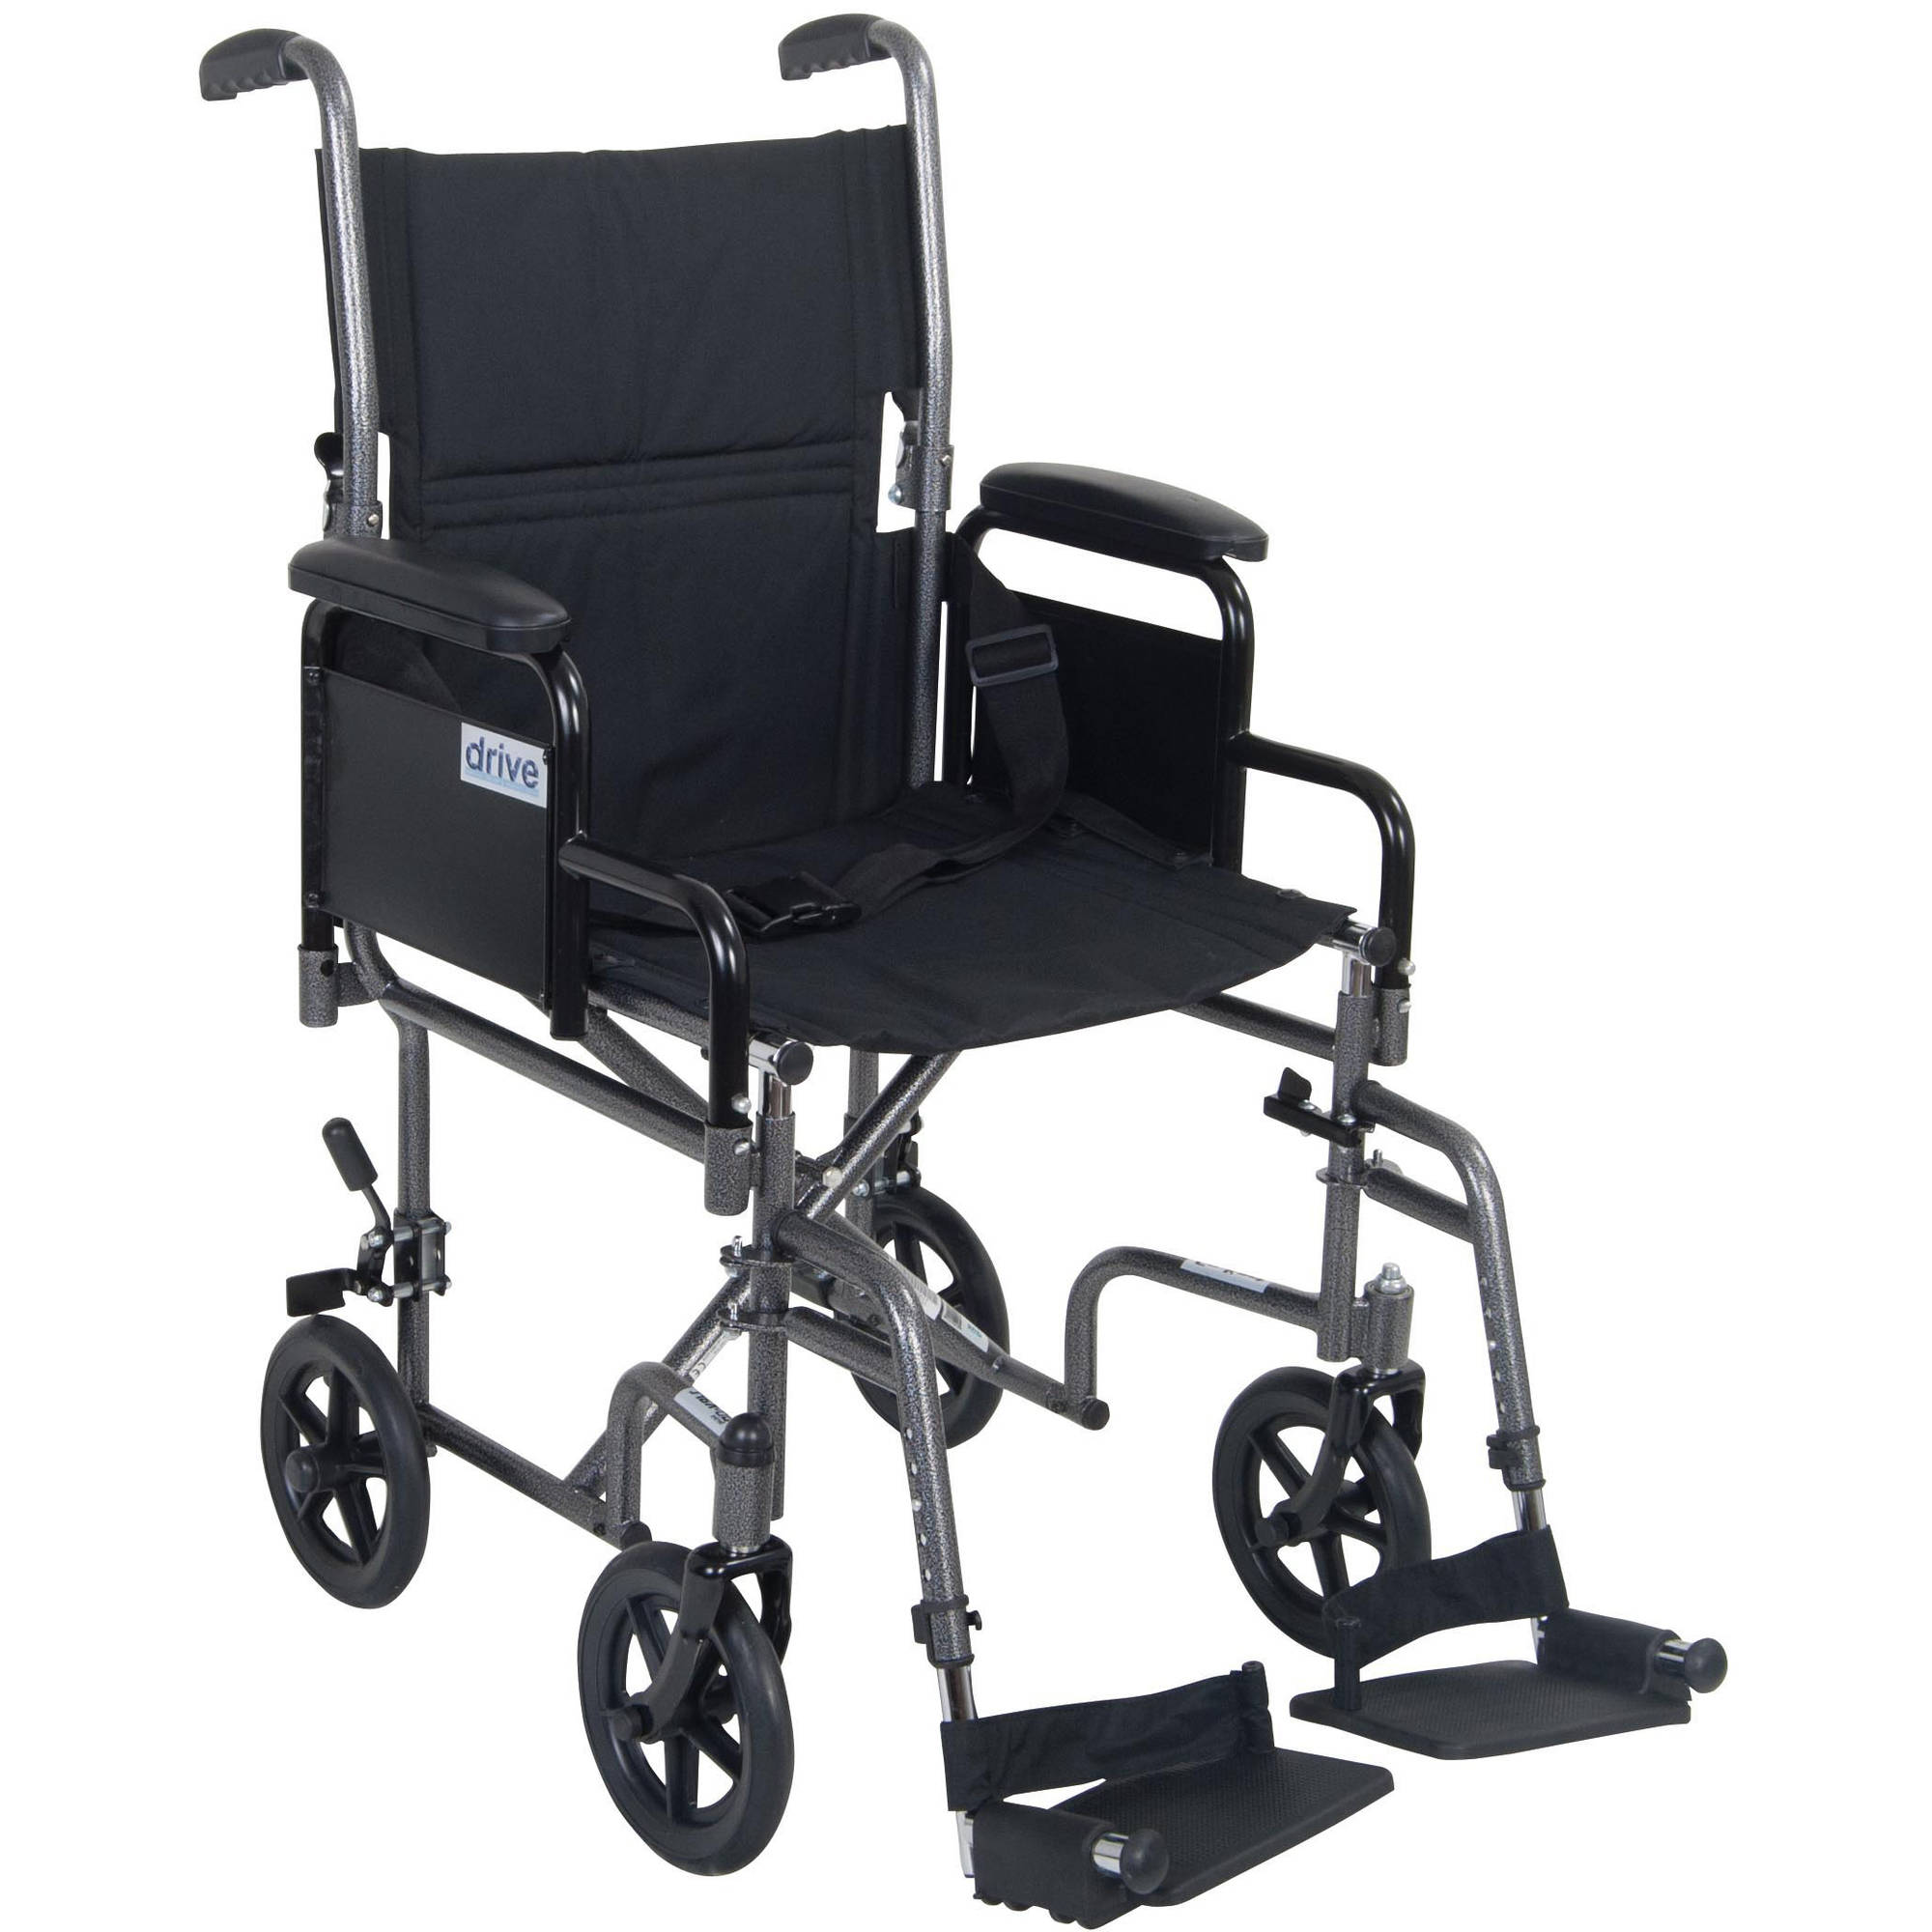 transport chairs at walmart folding chair carts lifetime vetmed usa corp on seller reviews marketplace ranks